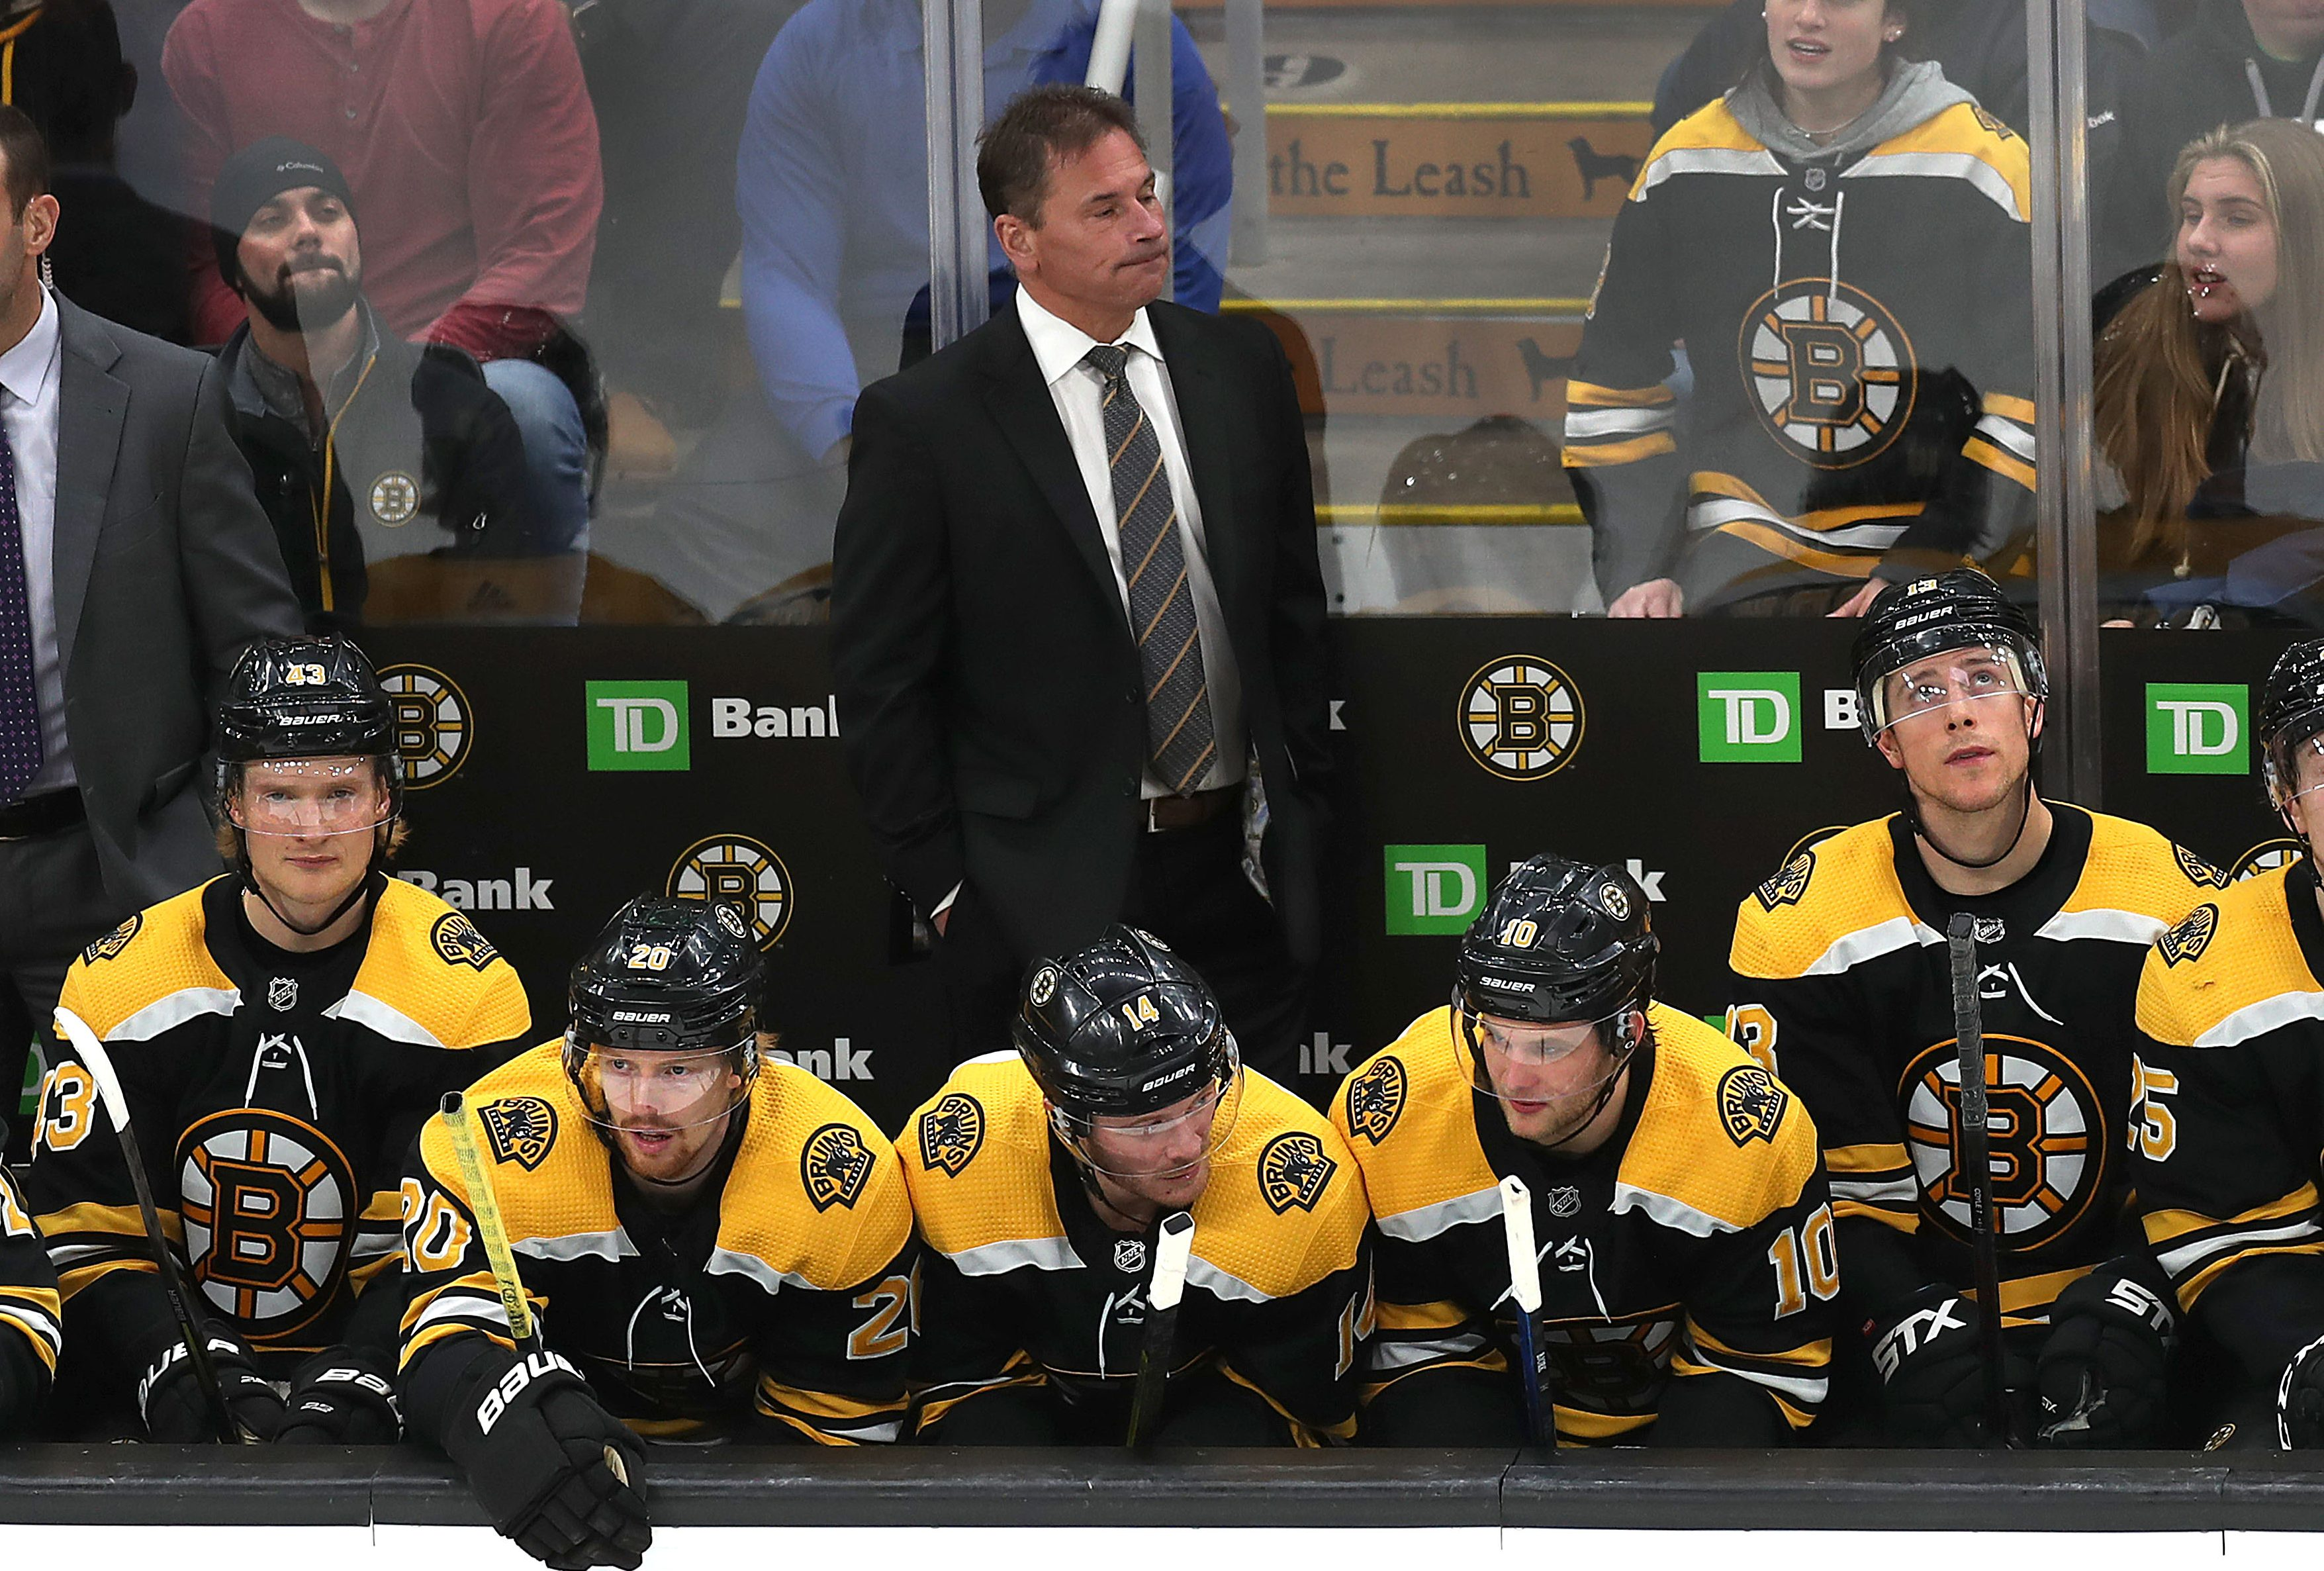 Bruins coach Cassidy has some harsh words for his defense